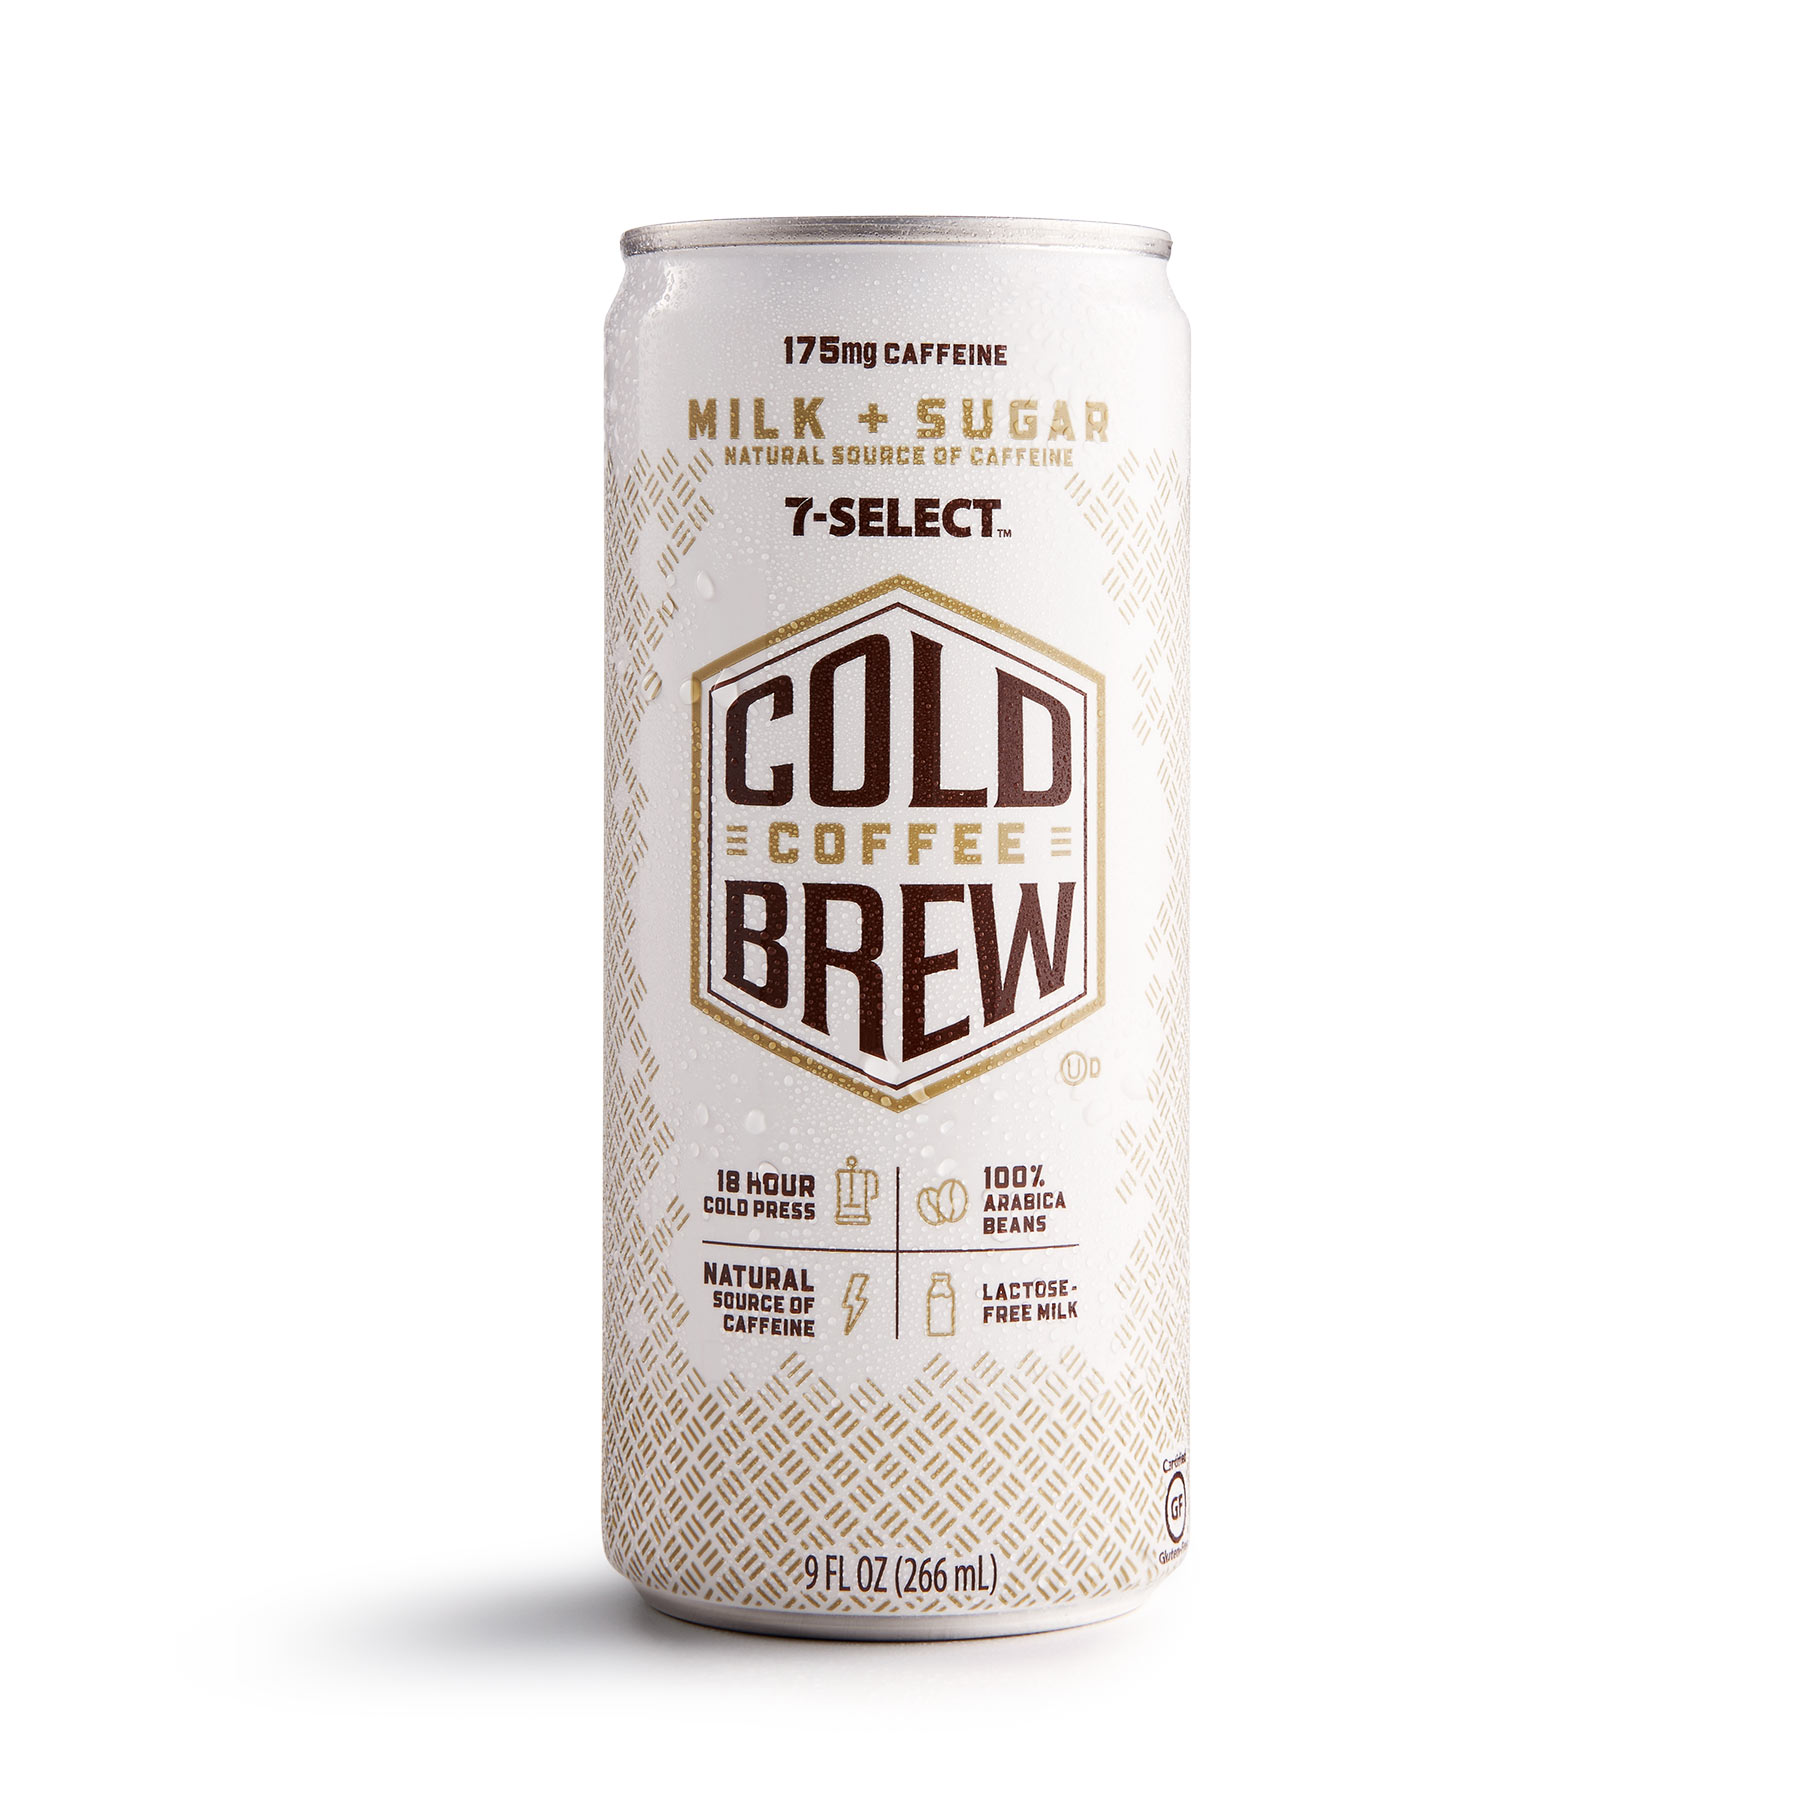 A 7-Select by 7-Eleven Cold Brew Coffee, milk and sugar flavor.